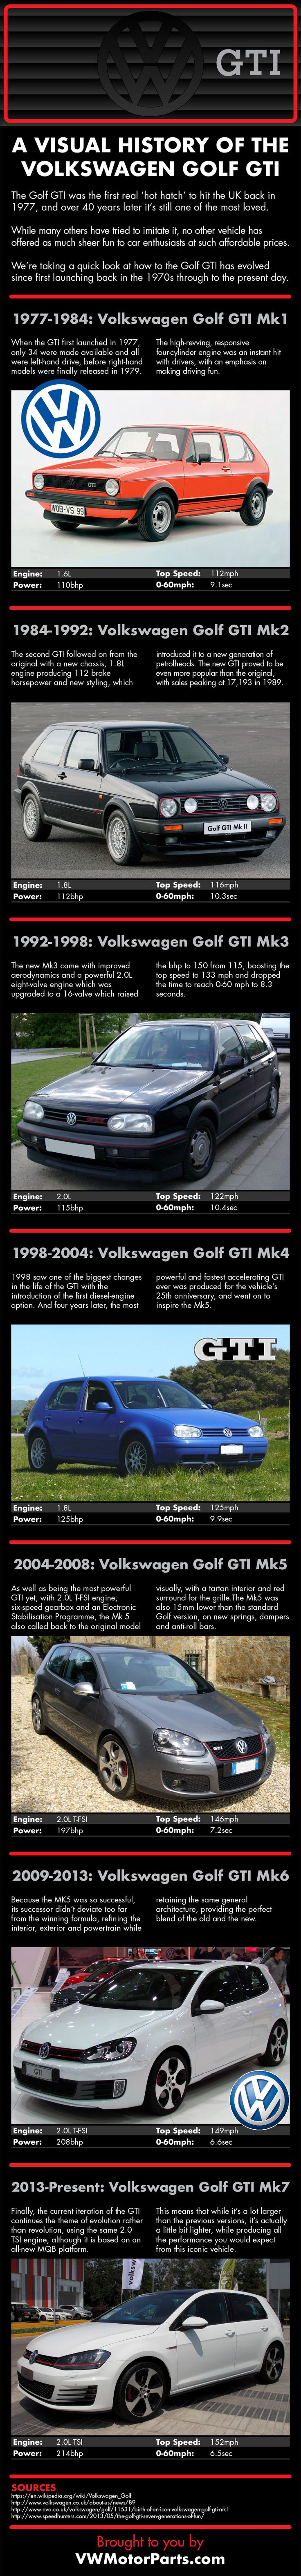 A Visual History of the Volkswagen Golf GTI [Infographic] : Buy Genuine Volkswagen Parts, VW Car Parts & Volkswagen Spare Parts Online